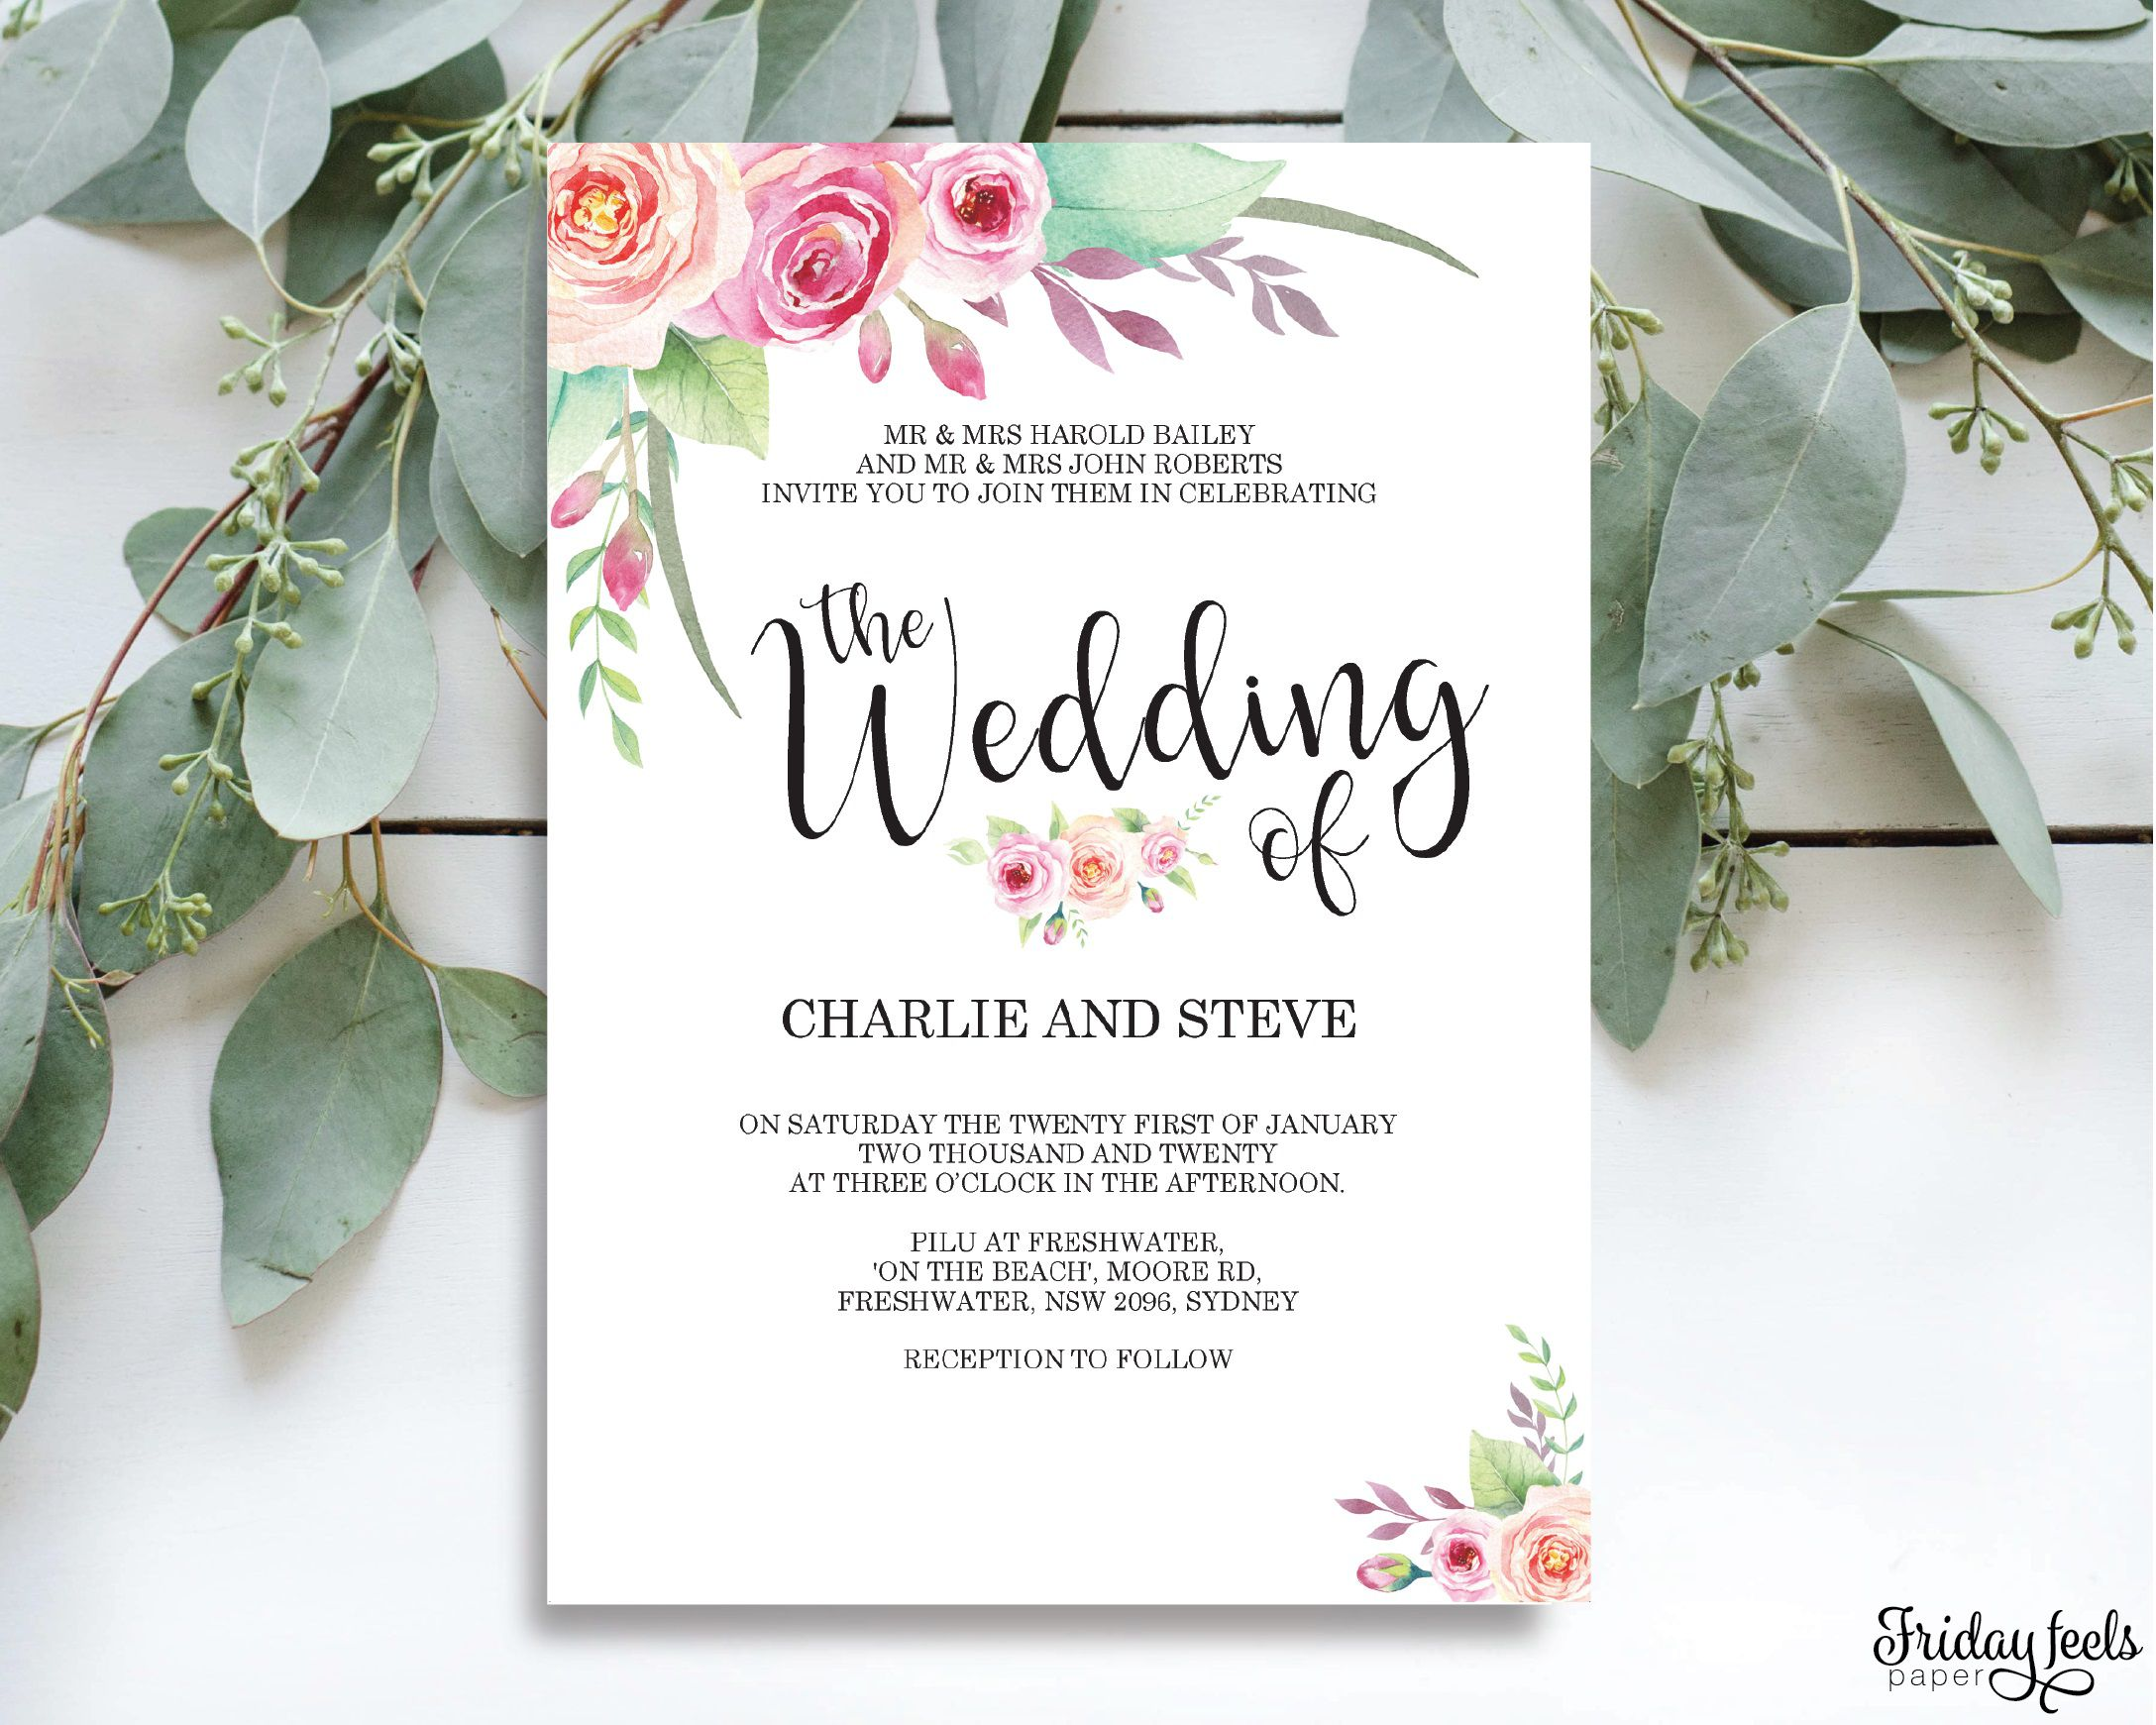 008 Unbelievable Editable Wedding Invitation Template Highest Clarity  Templates Tamil Card Free Download Psd OnlineFull